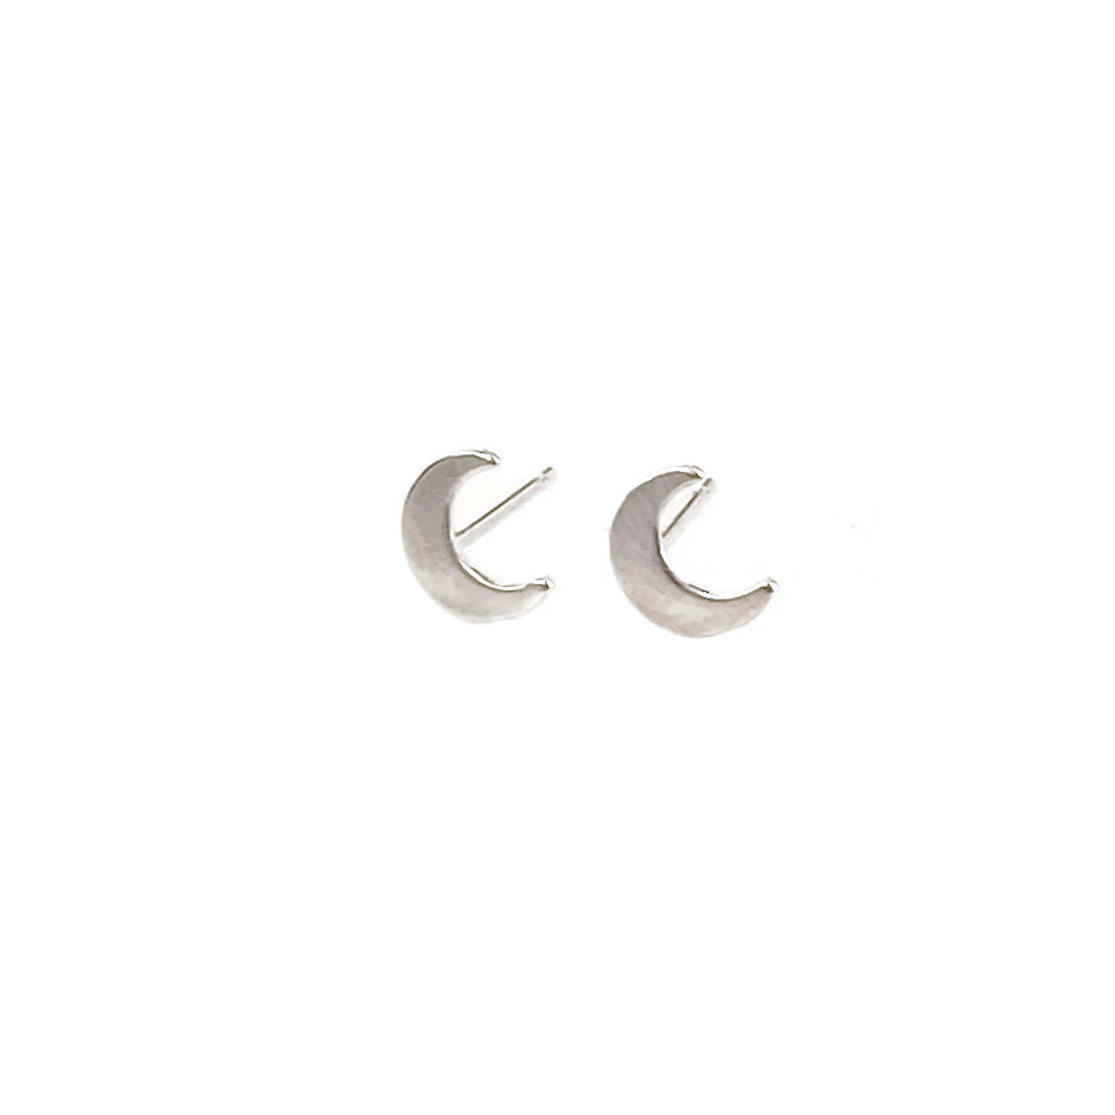 There are sterling silver crescent moon stud earrings.